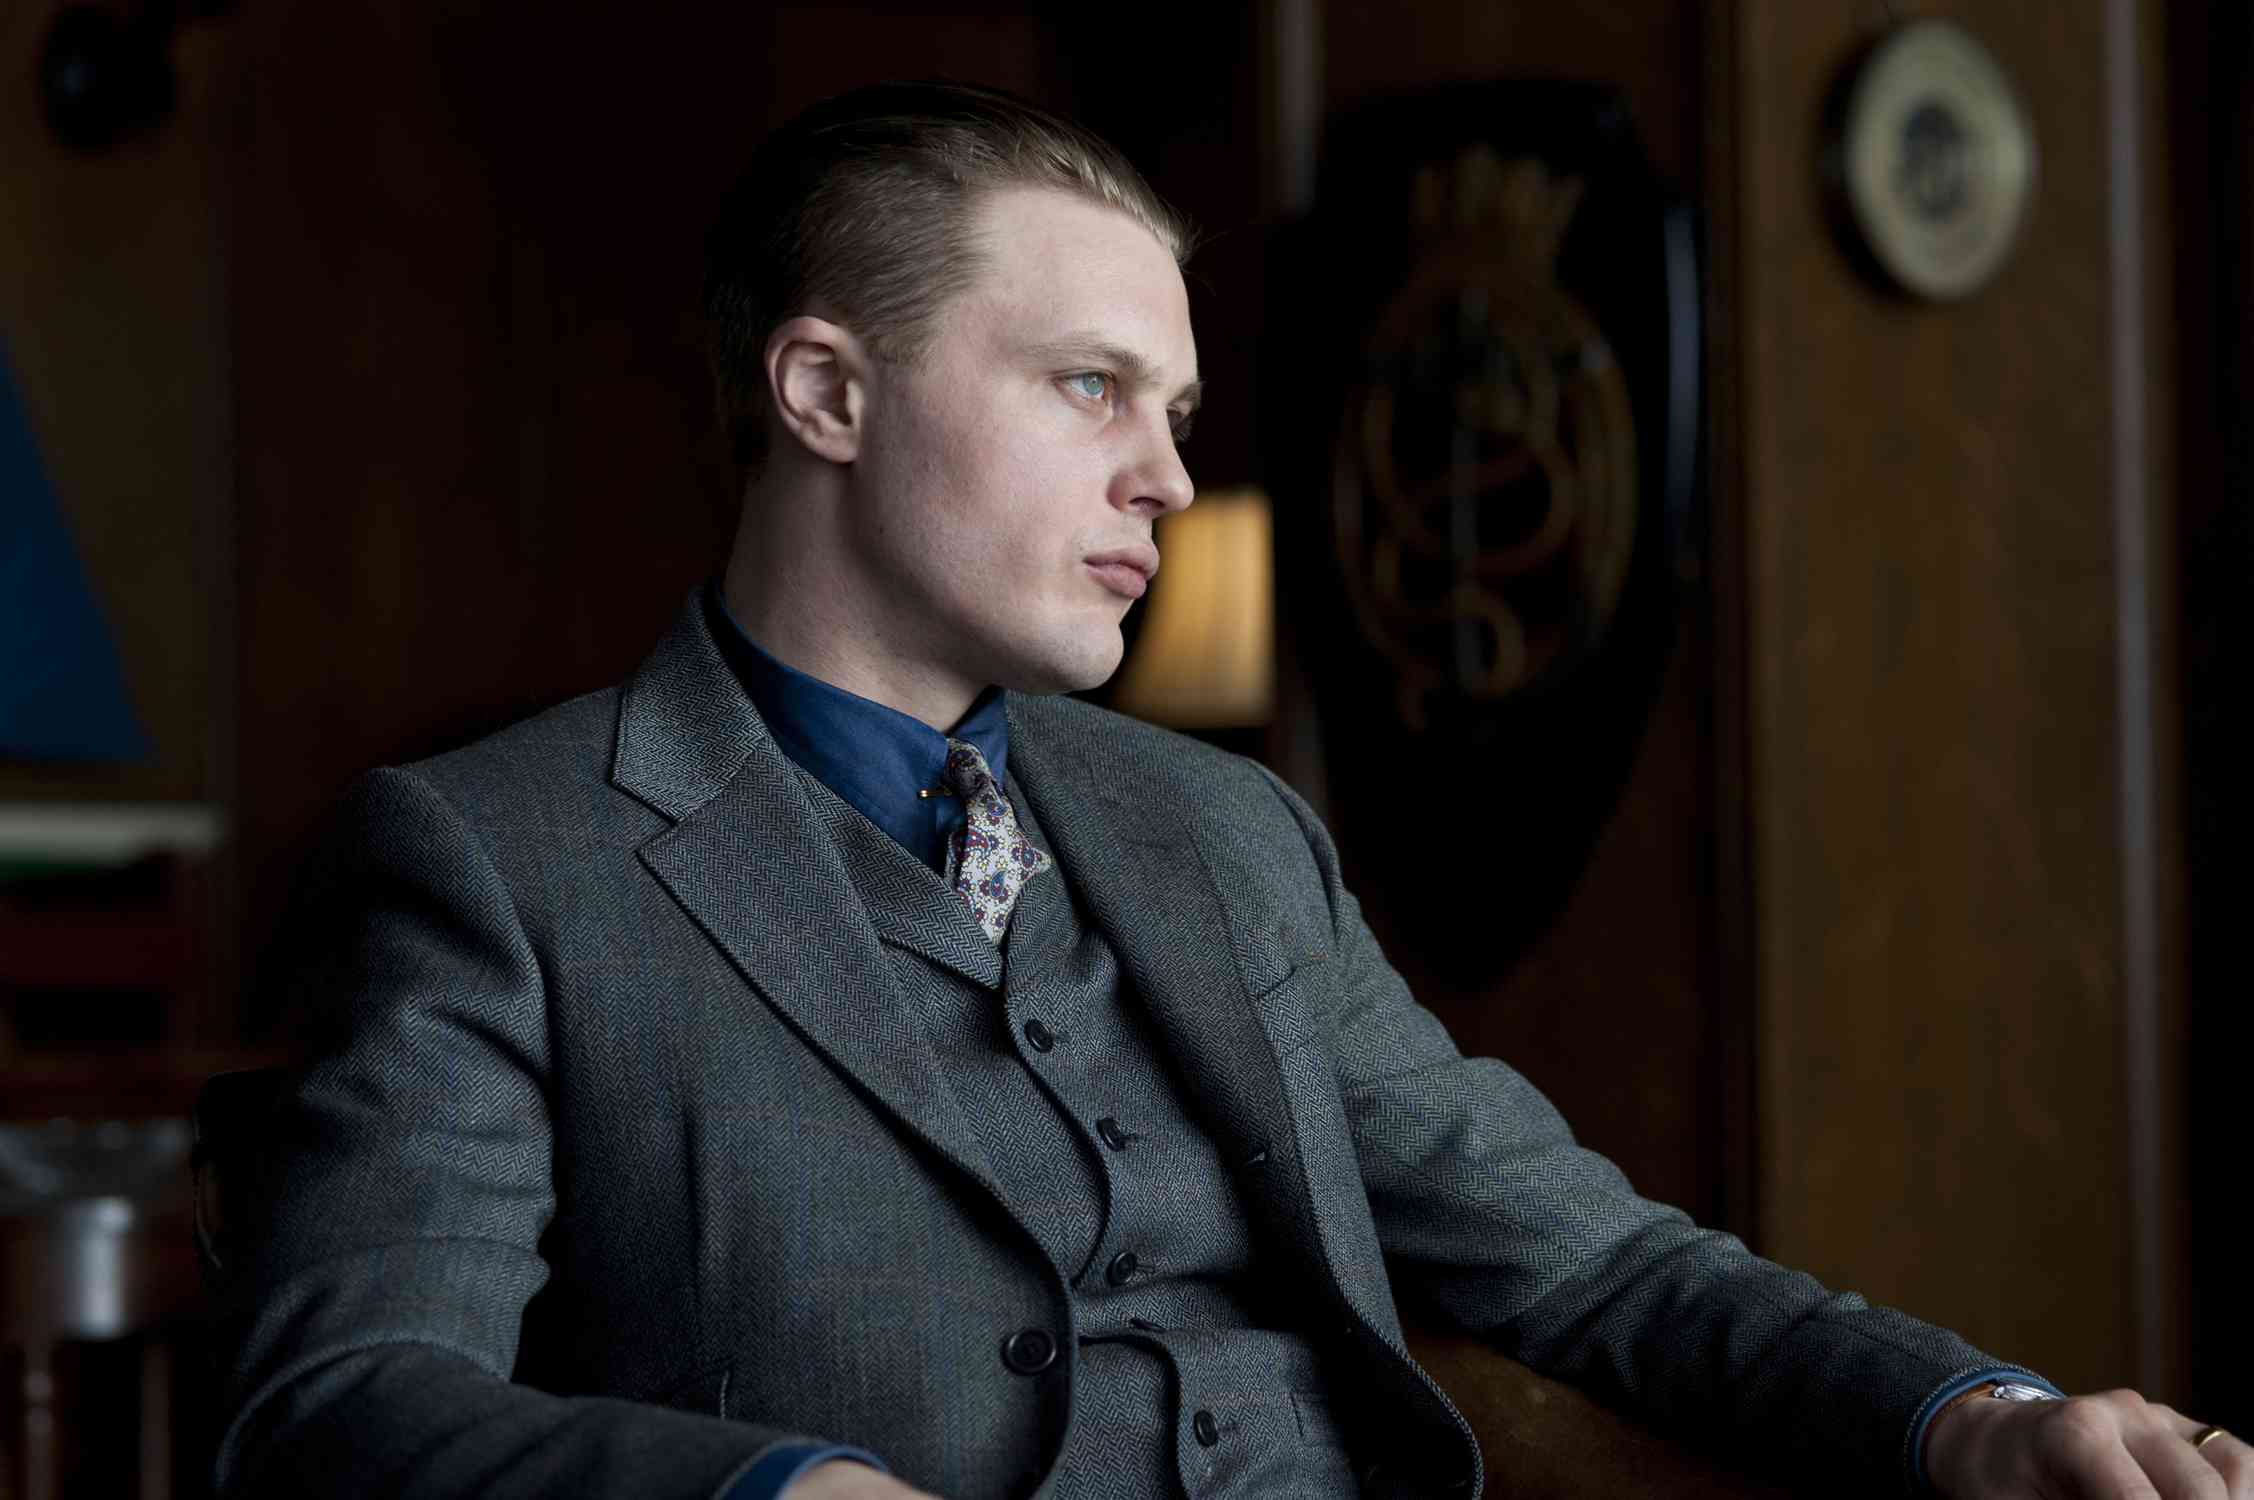 michael pitt death to birth переводmichael pitt gif, michael pitt – death to birth, michael pitt last days, michael pitt kuze, michael pitt height, michael pitt young, michael pitt as kurt cobain, michael pitt фильмография, michael pitt death to birth lyrics, michael pitt haircut, michael pitt death to birth перевод, michael pitt facebook, michael pitt death to birth аккорды, michael pitt films, michael pitt movies, michael pitt lips, michael pitt fb, michael pitt 2006, michael pitt vk, michael pitt band